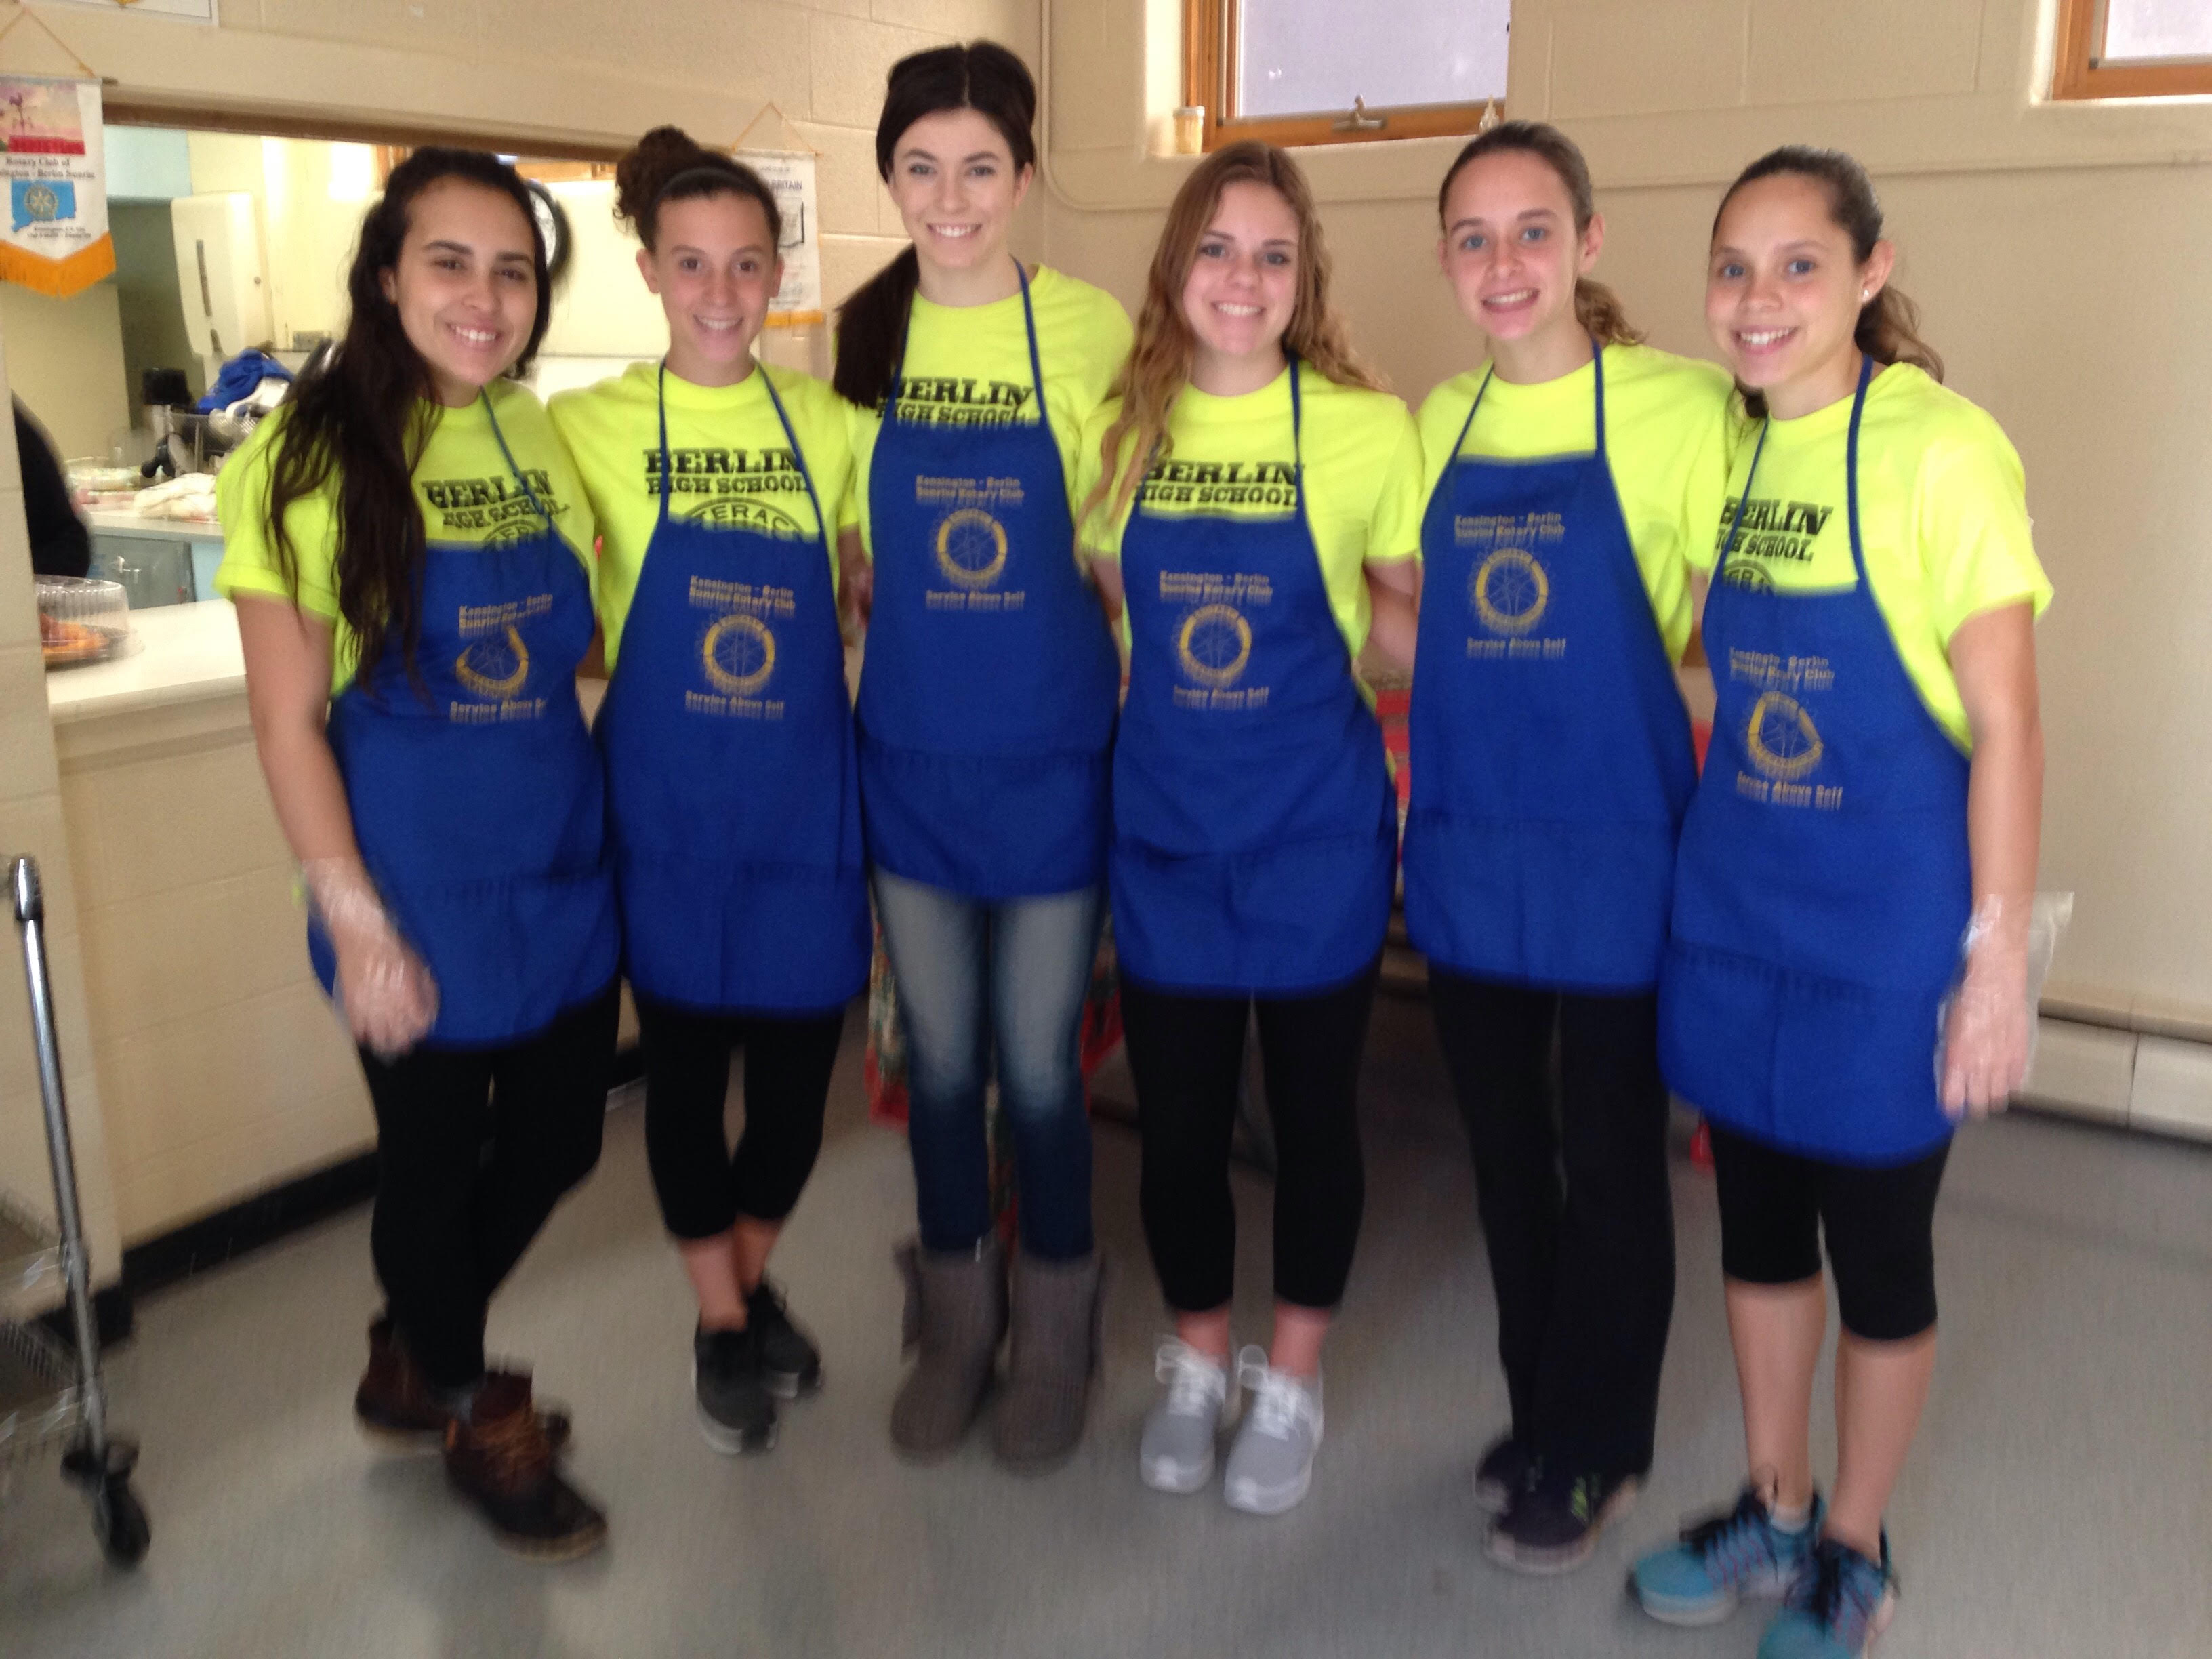 Members of the Berlin Interact Club volunteer at the Salvation Army Soup Kitchen on the first Sunday of each month. From left: Gabby Pattavina, Maxine Muscatello, Bridget McQuillan, Alina Whiteside, Alexa Monroe and Madison Monroe.